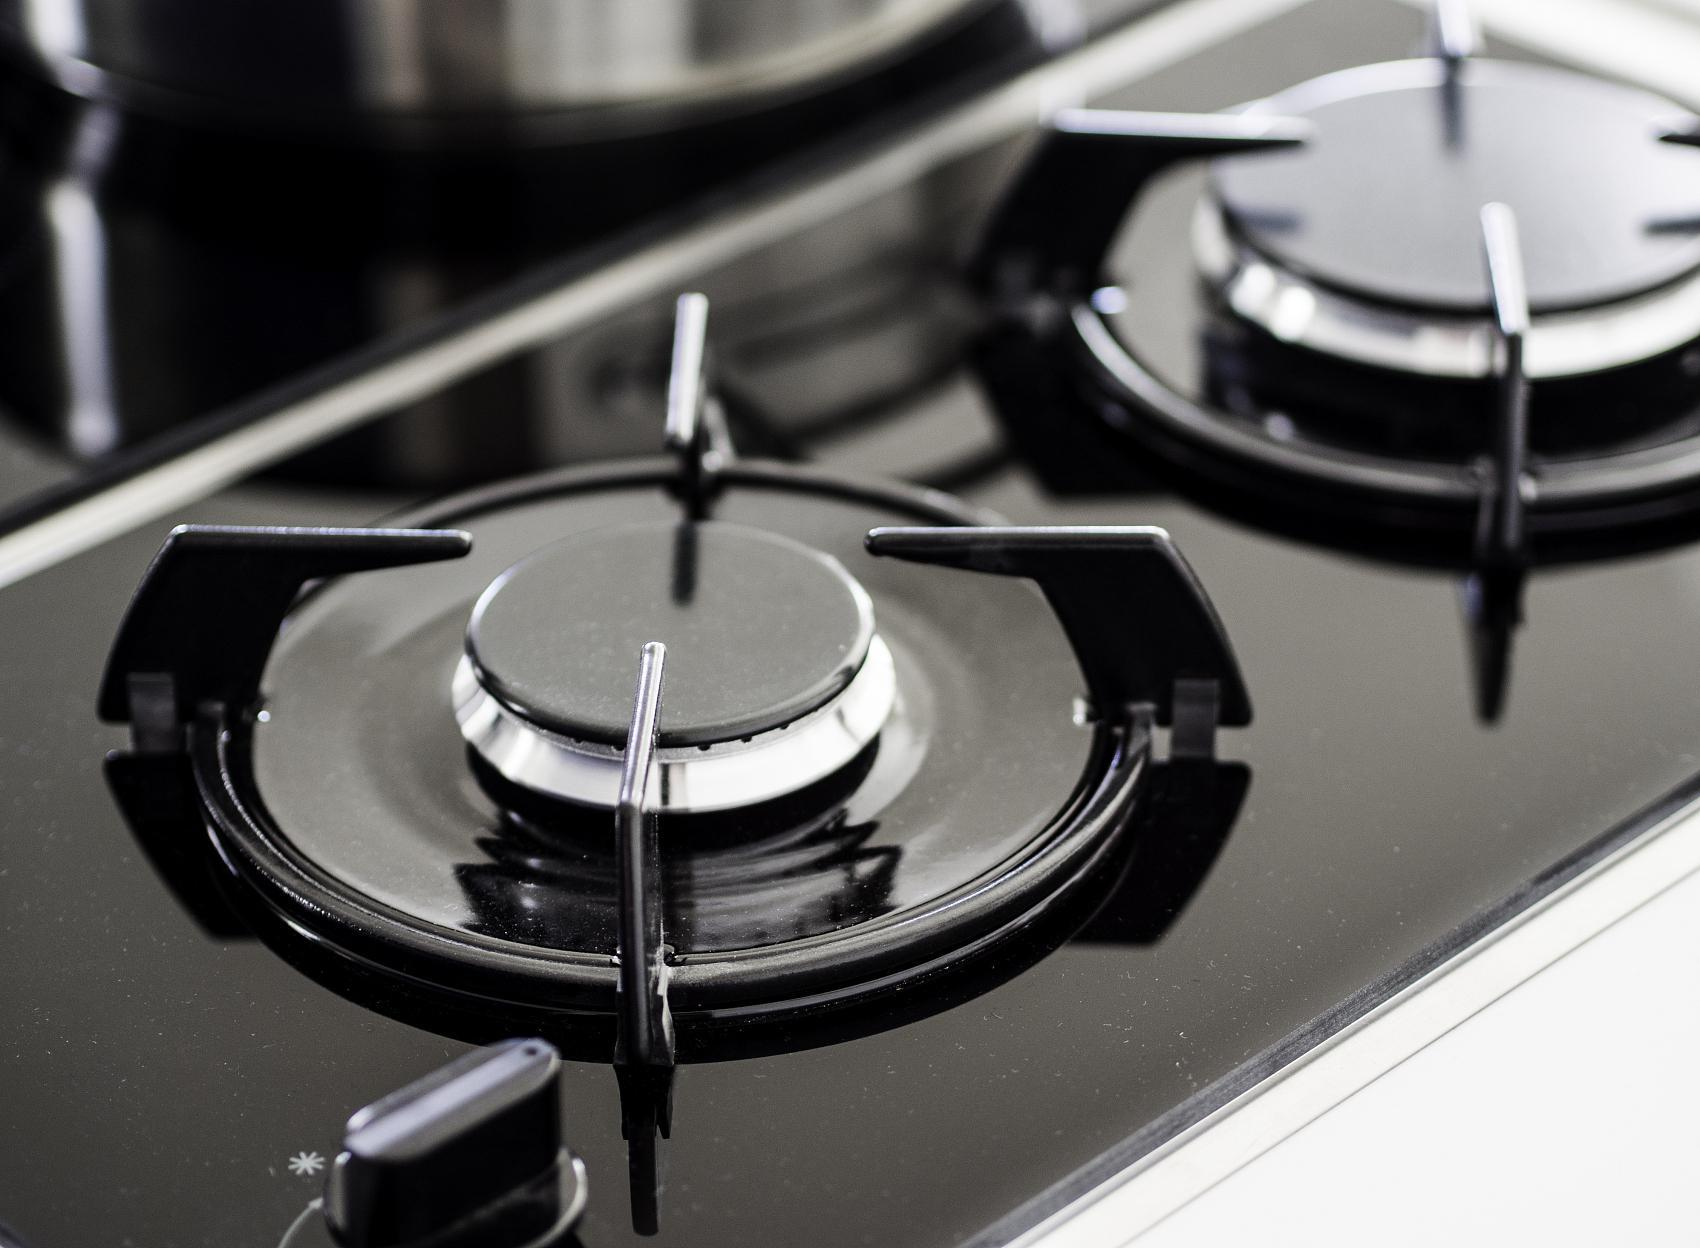 How to clean and maintenance your gas hob?